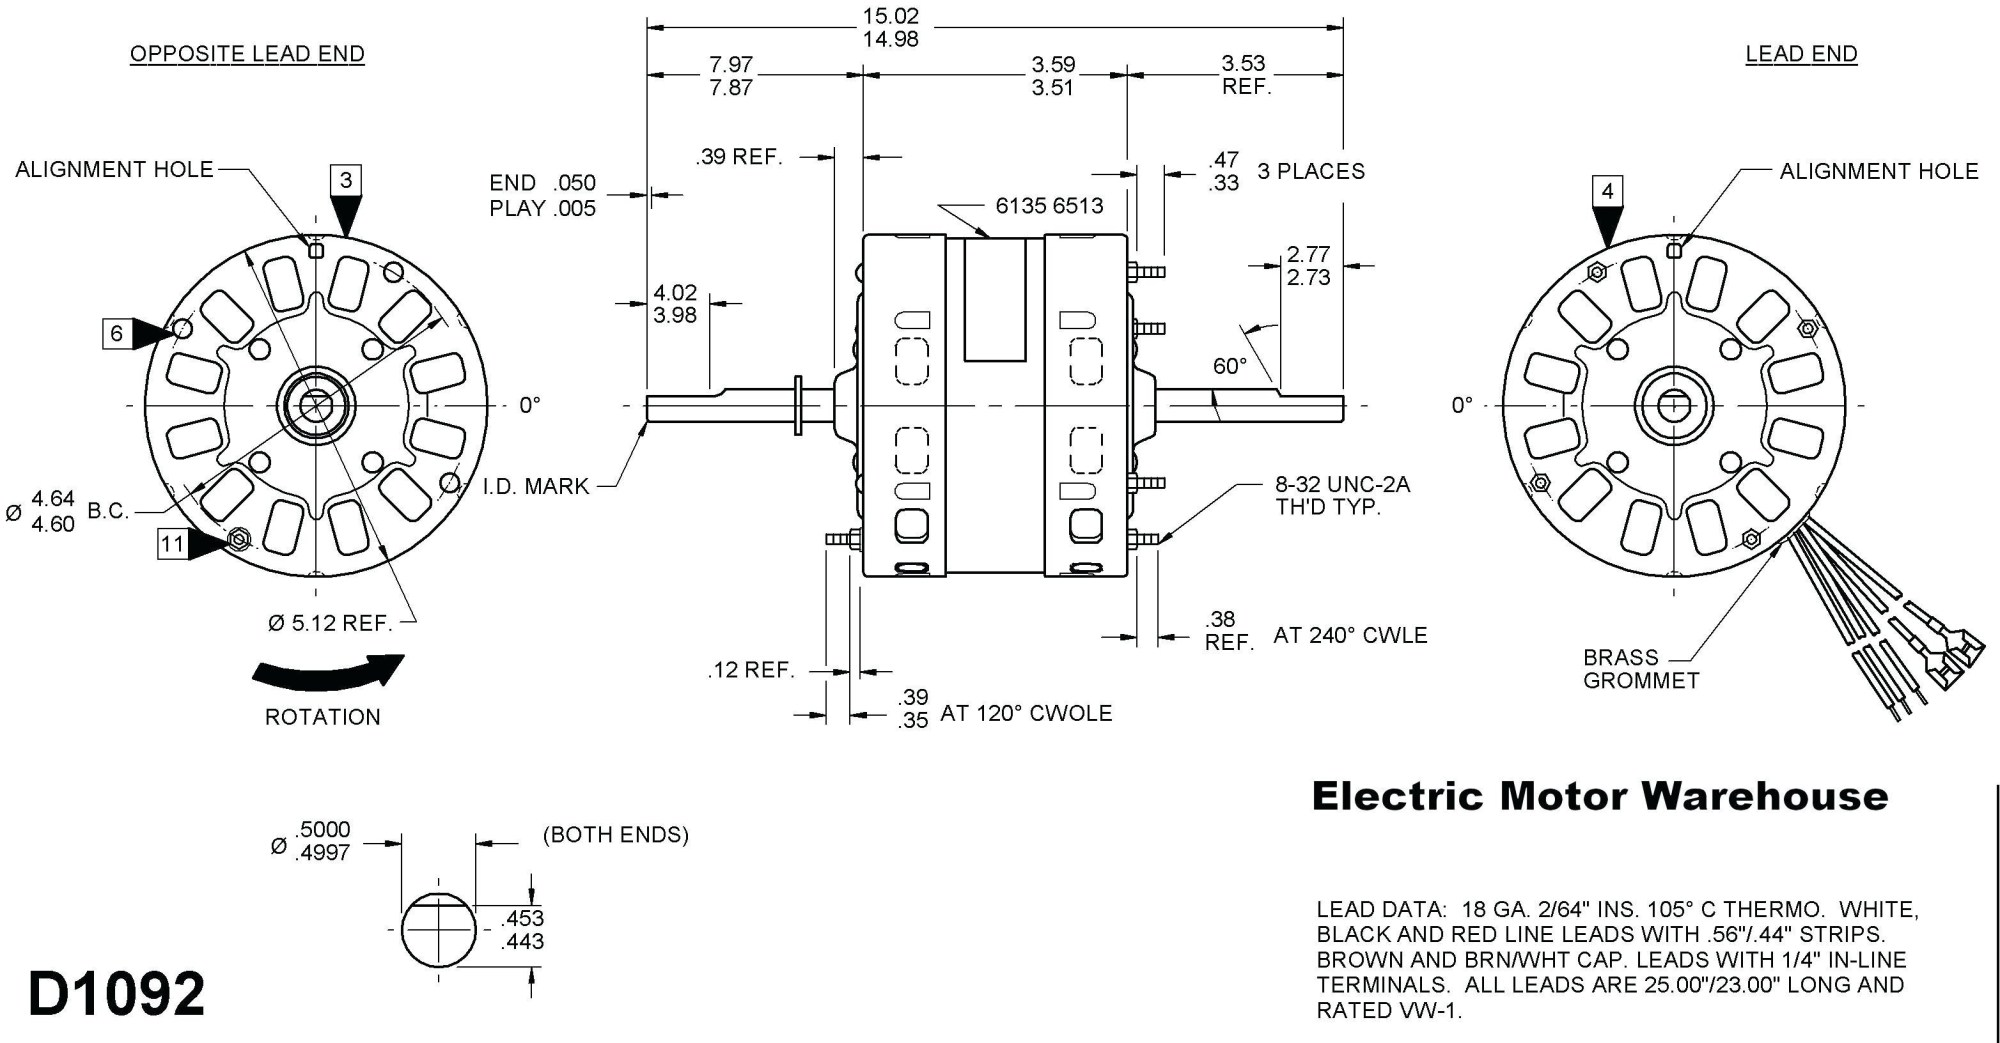 hight resolution of fasco blower motor wiring diagram download wiring diagram for fasco blower motor valid fasco blower